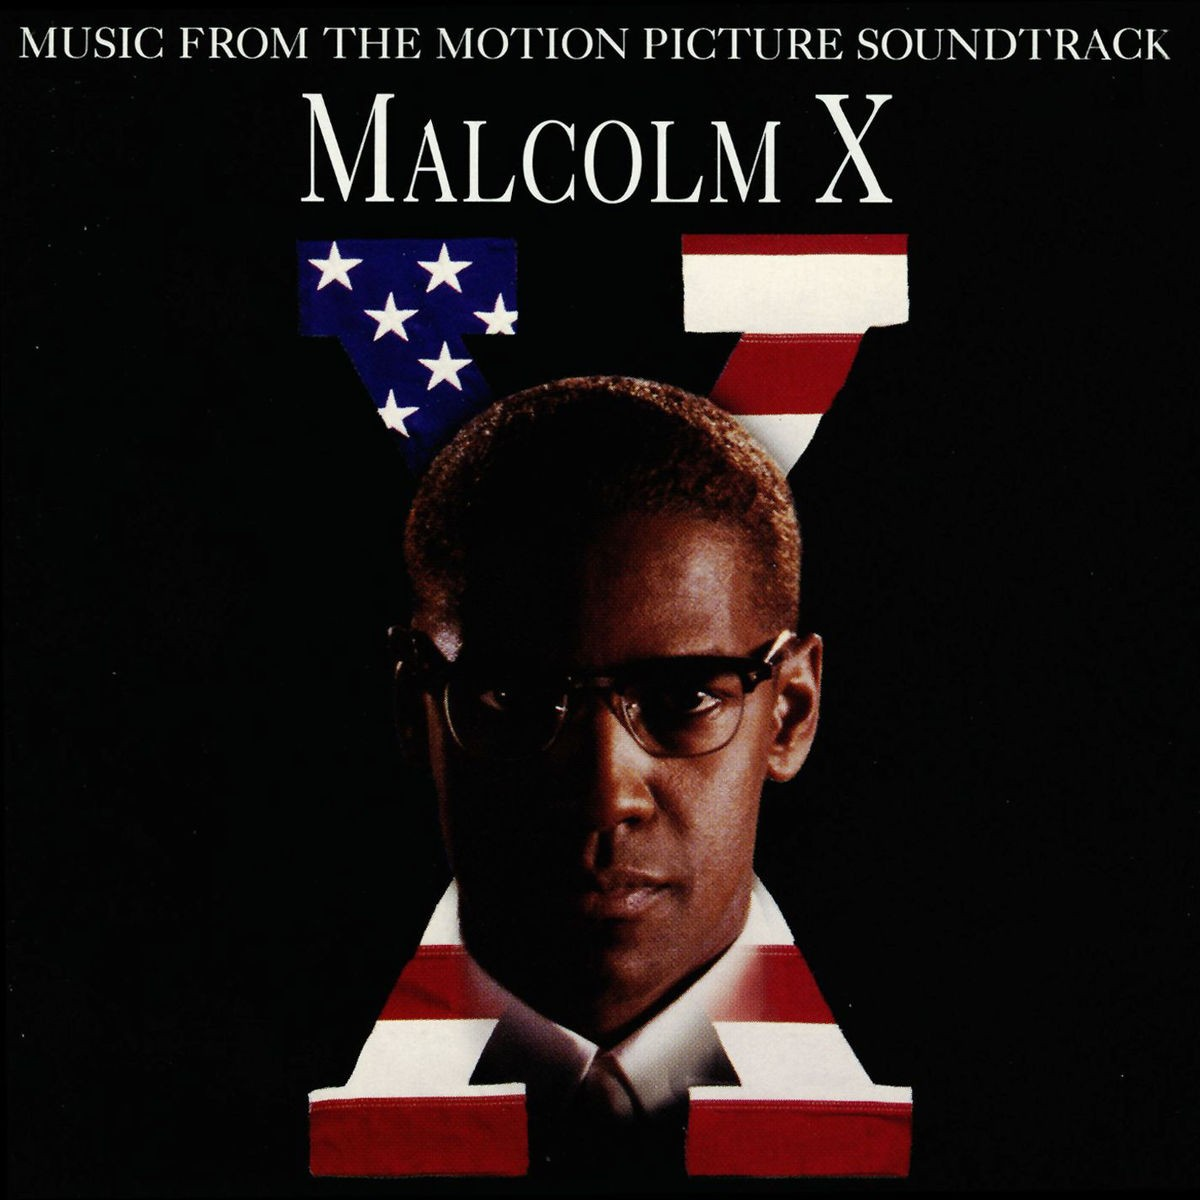 Malcolm X (Music from the Motion Picture Soundtrack) VINYL - 9362490387